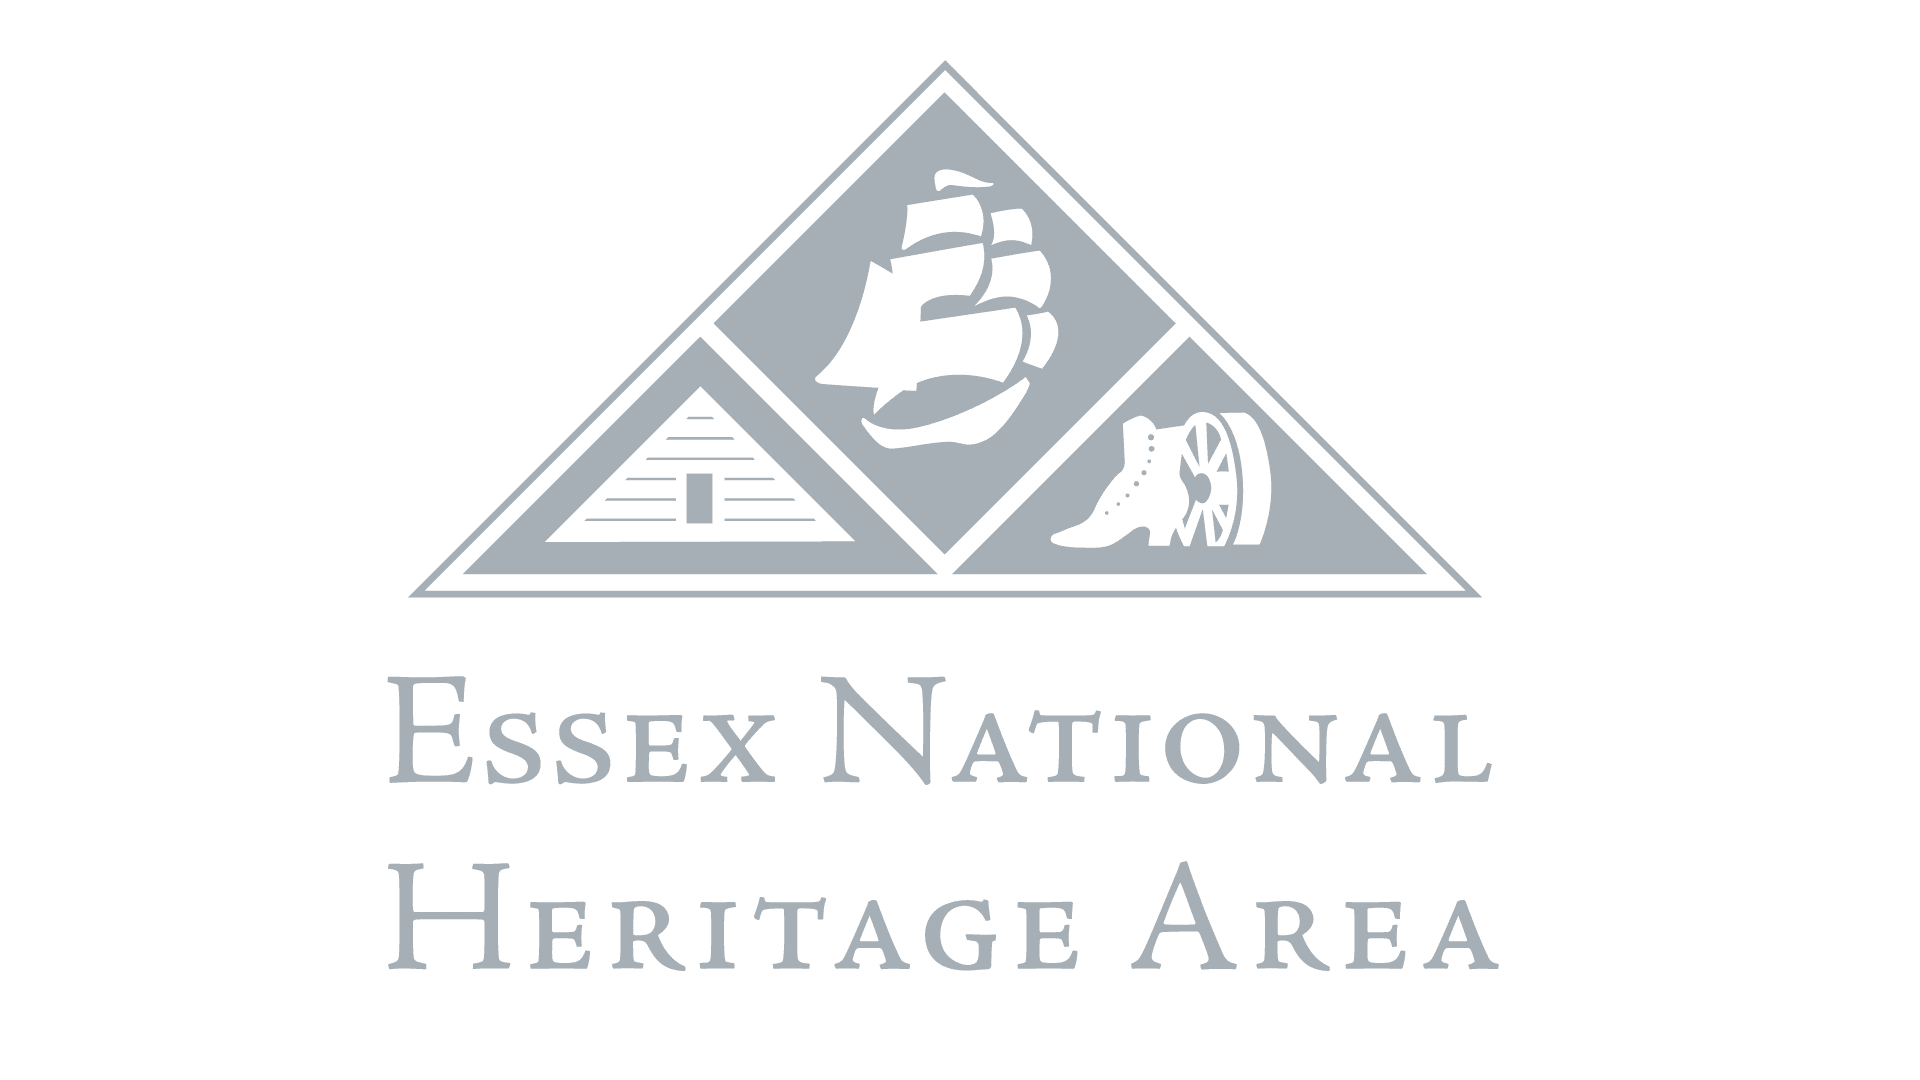 Essex National Heritage